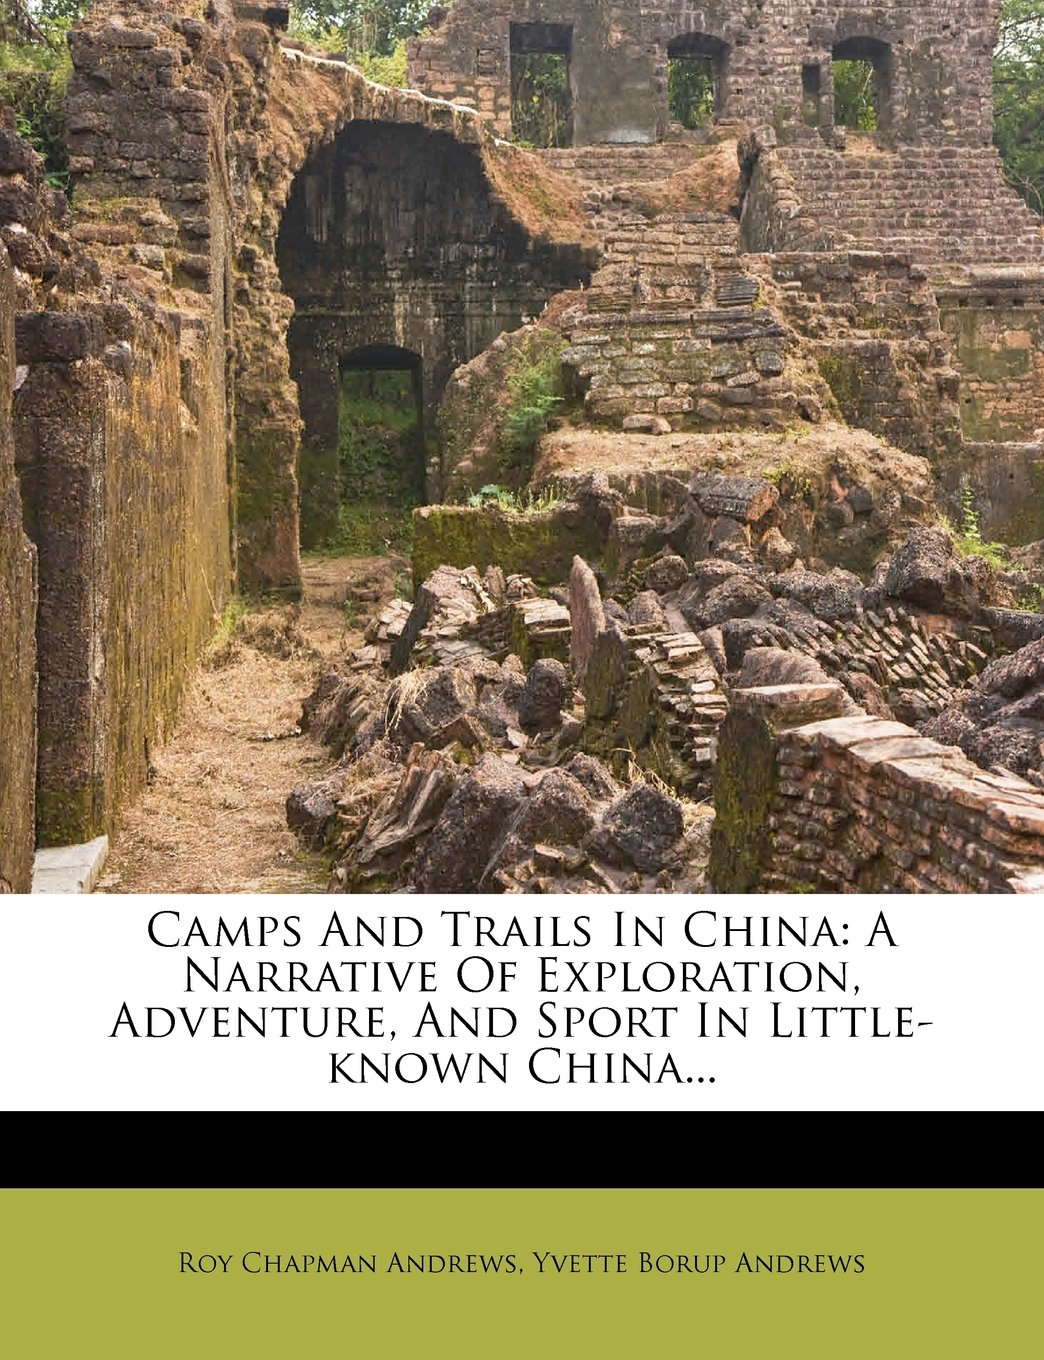 Read Online Camps And Trails In China: A Narrative Of Exploration, Adventure, And Sport In Little-known China... ebook